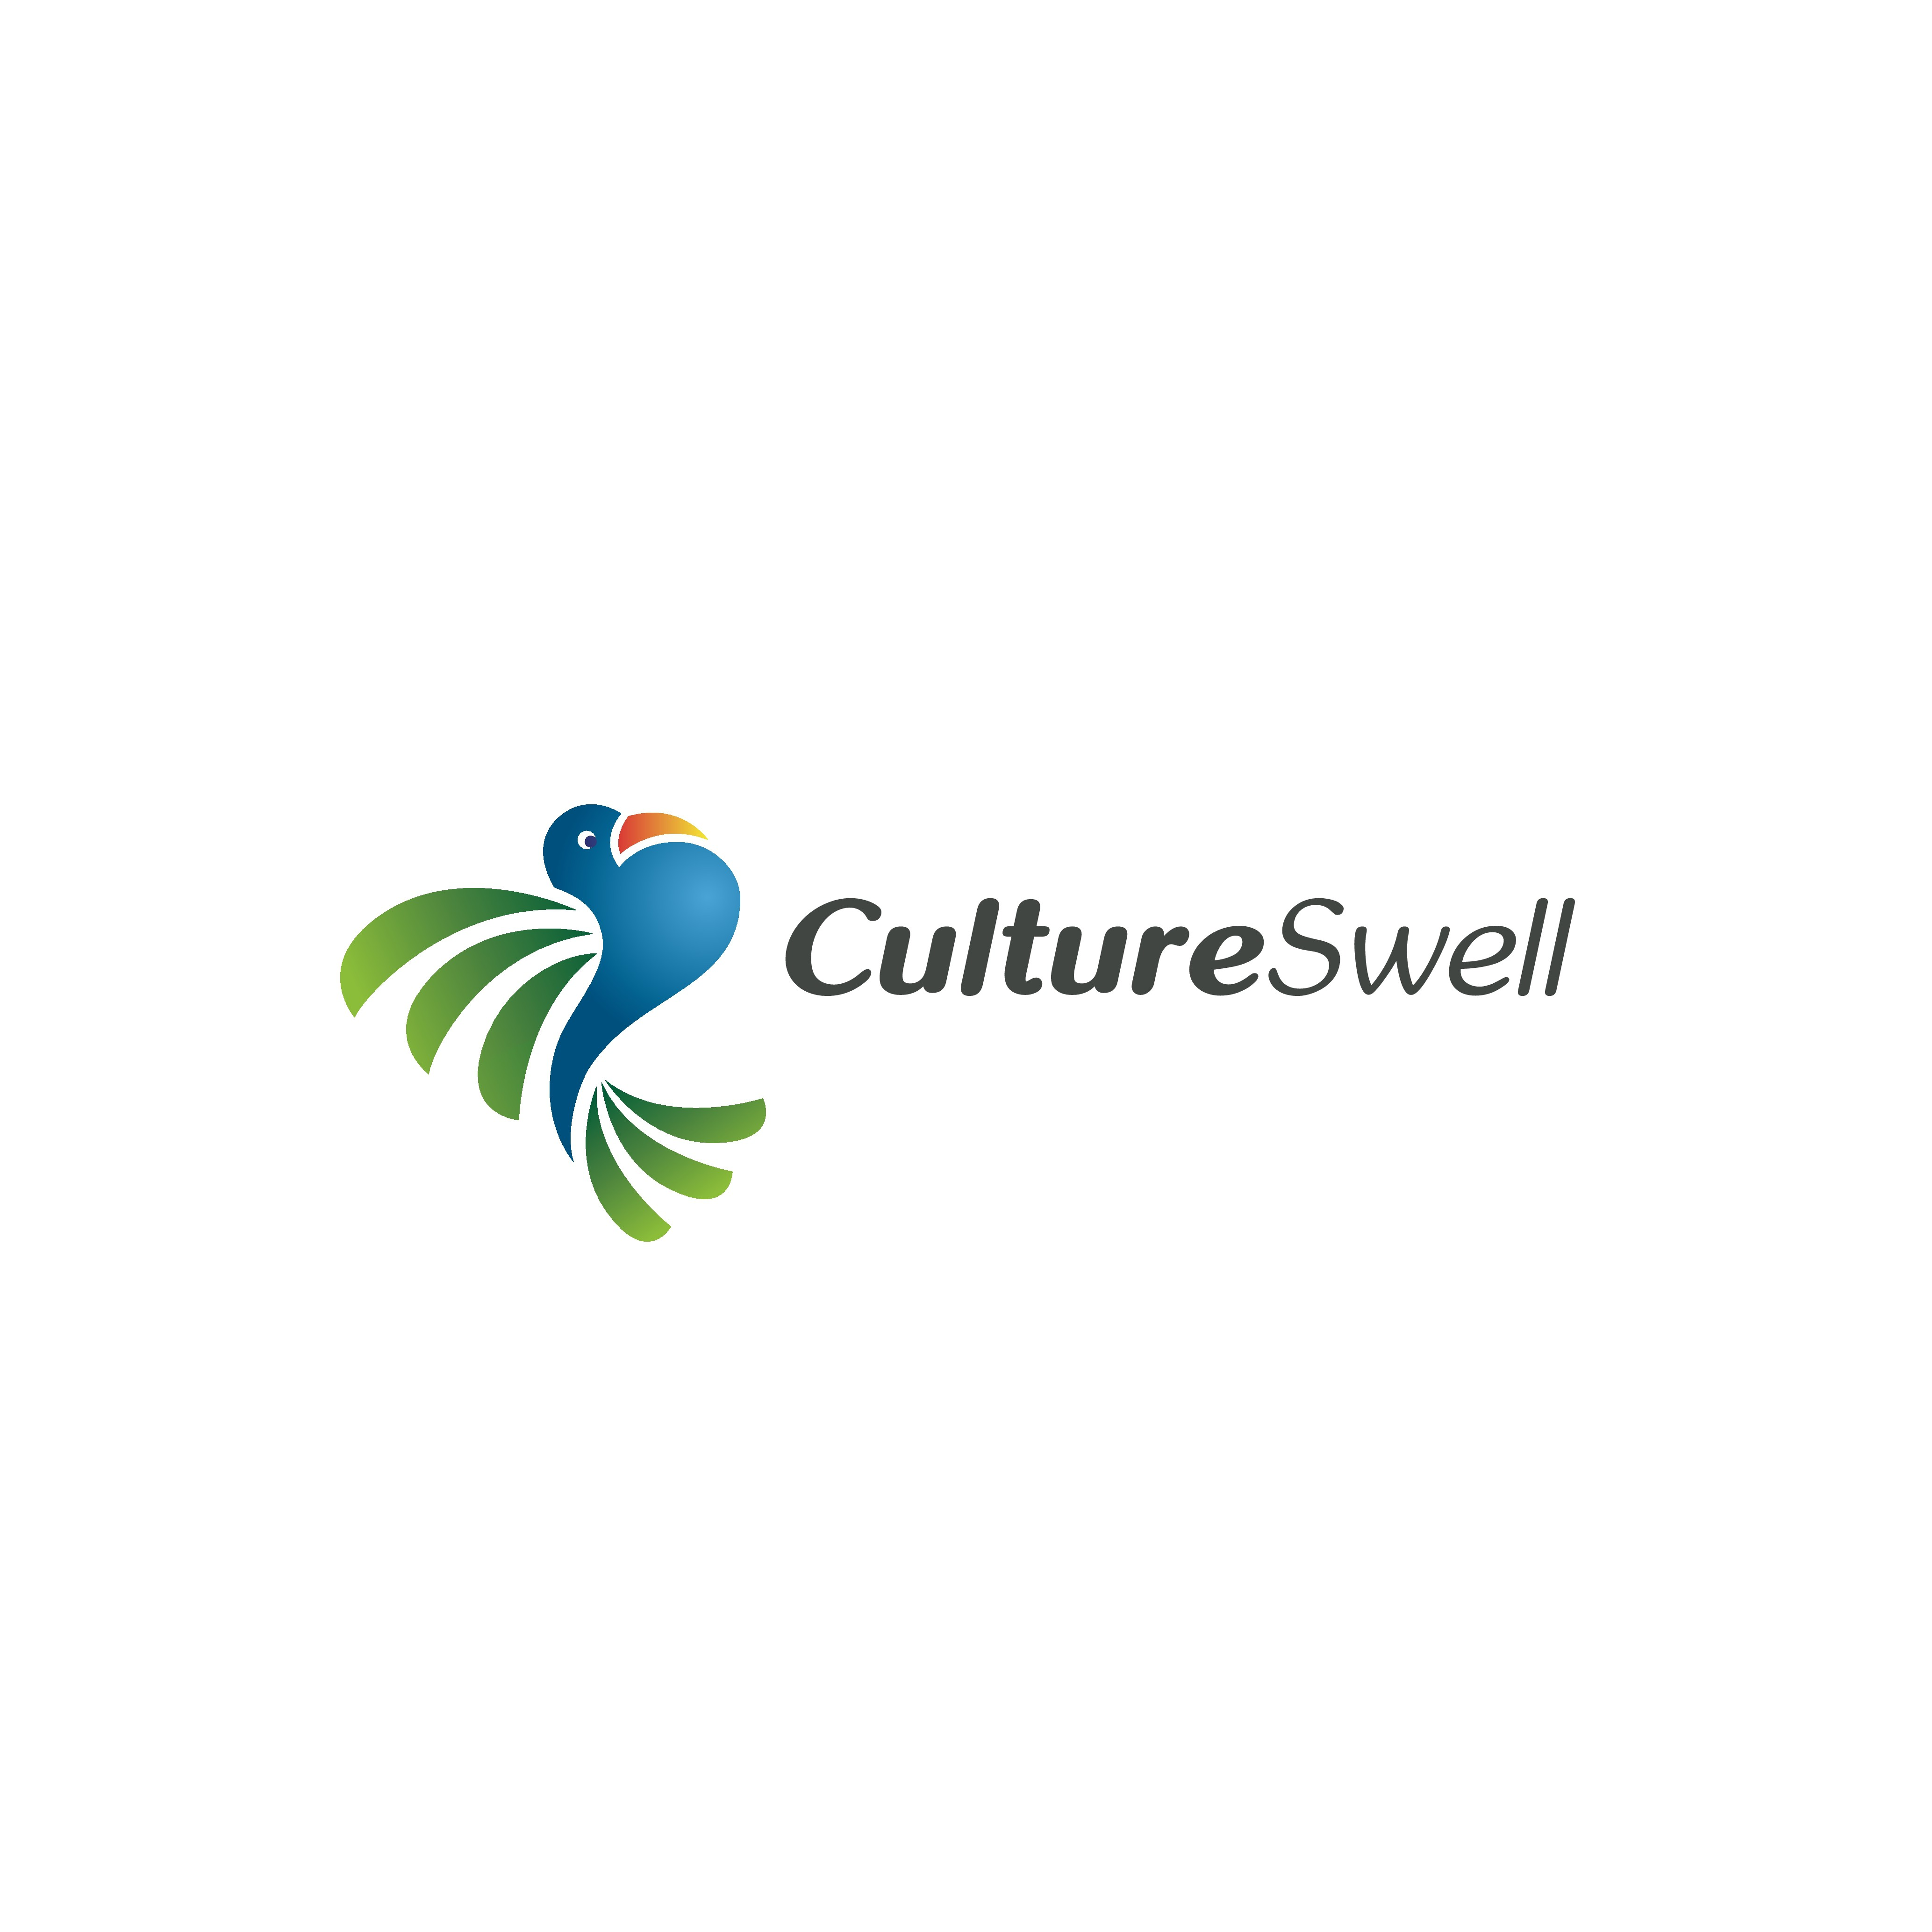 Create a fresh colorful design for CultureSwell